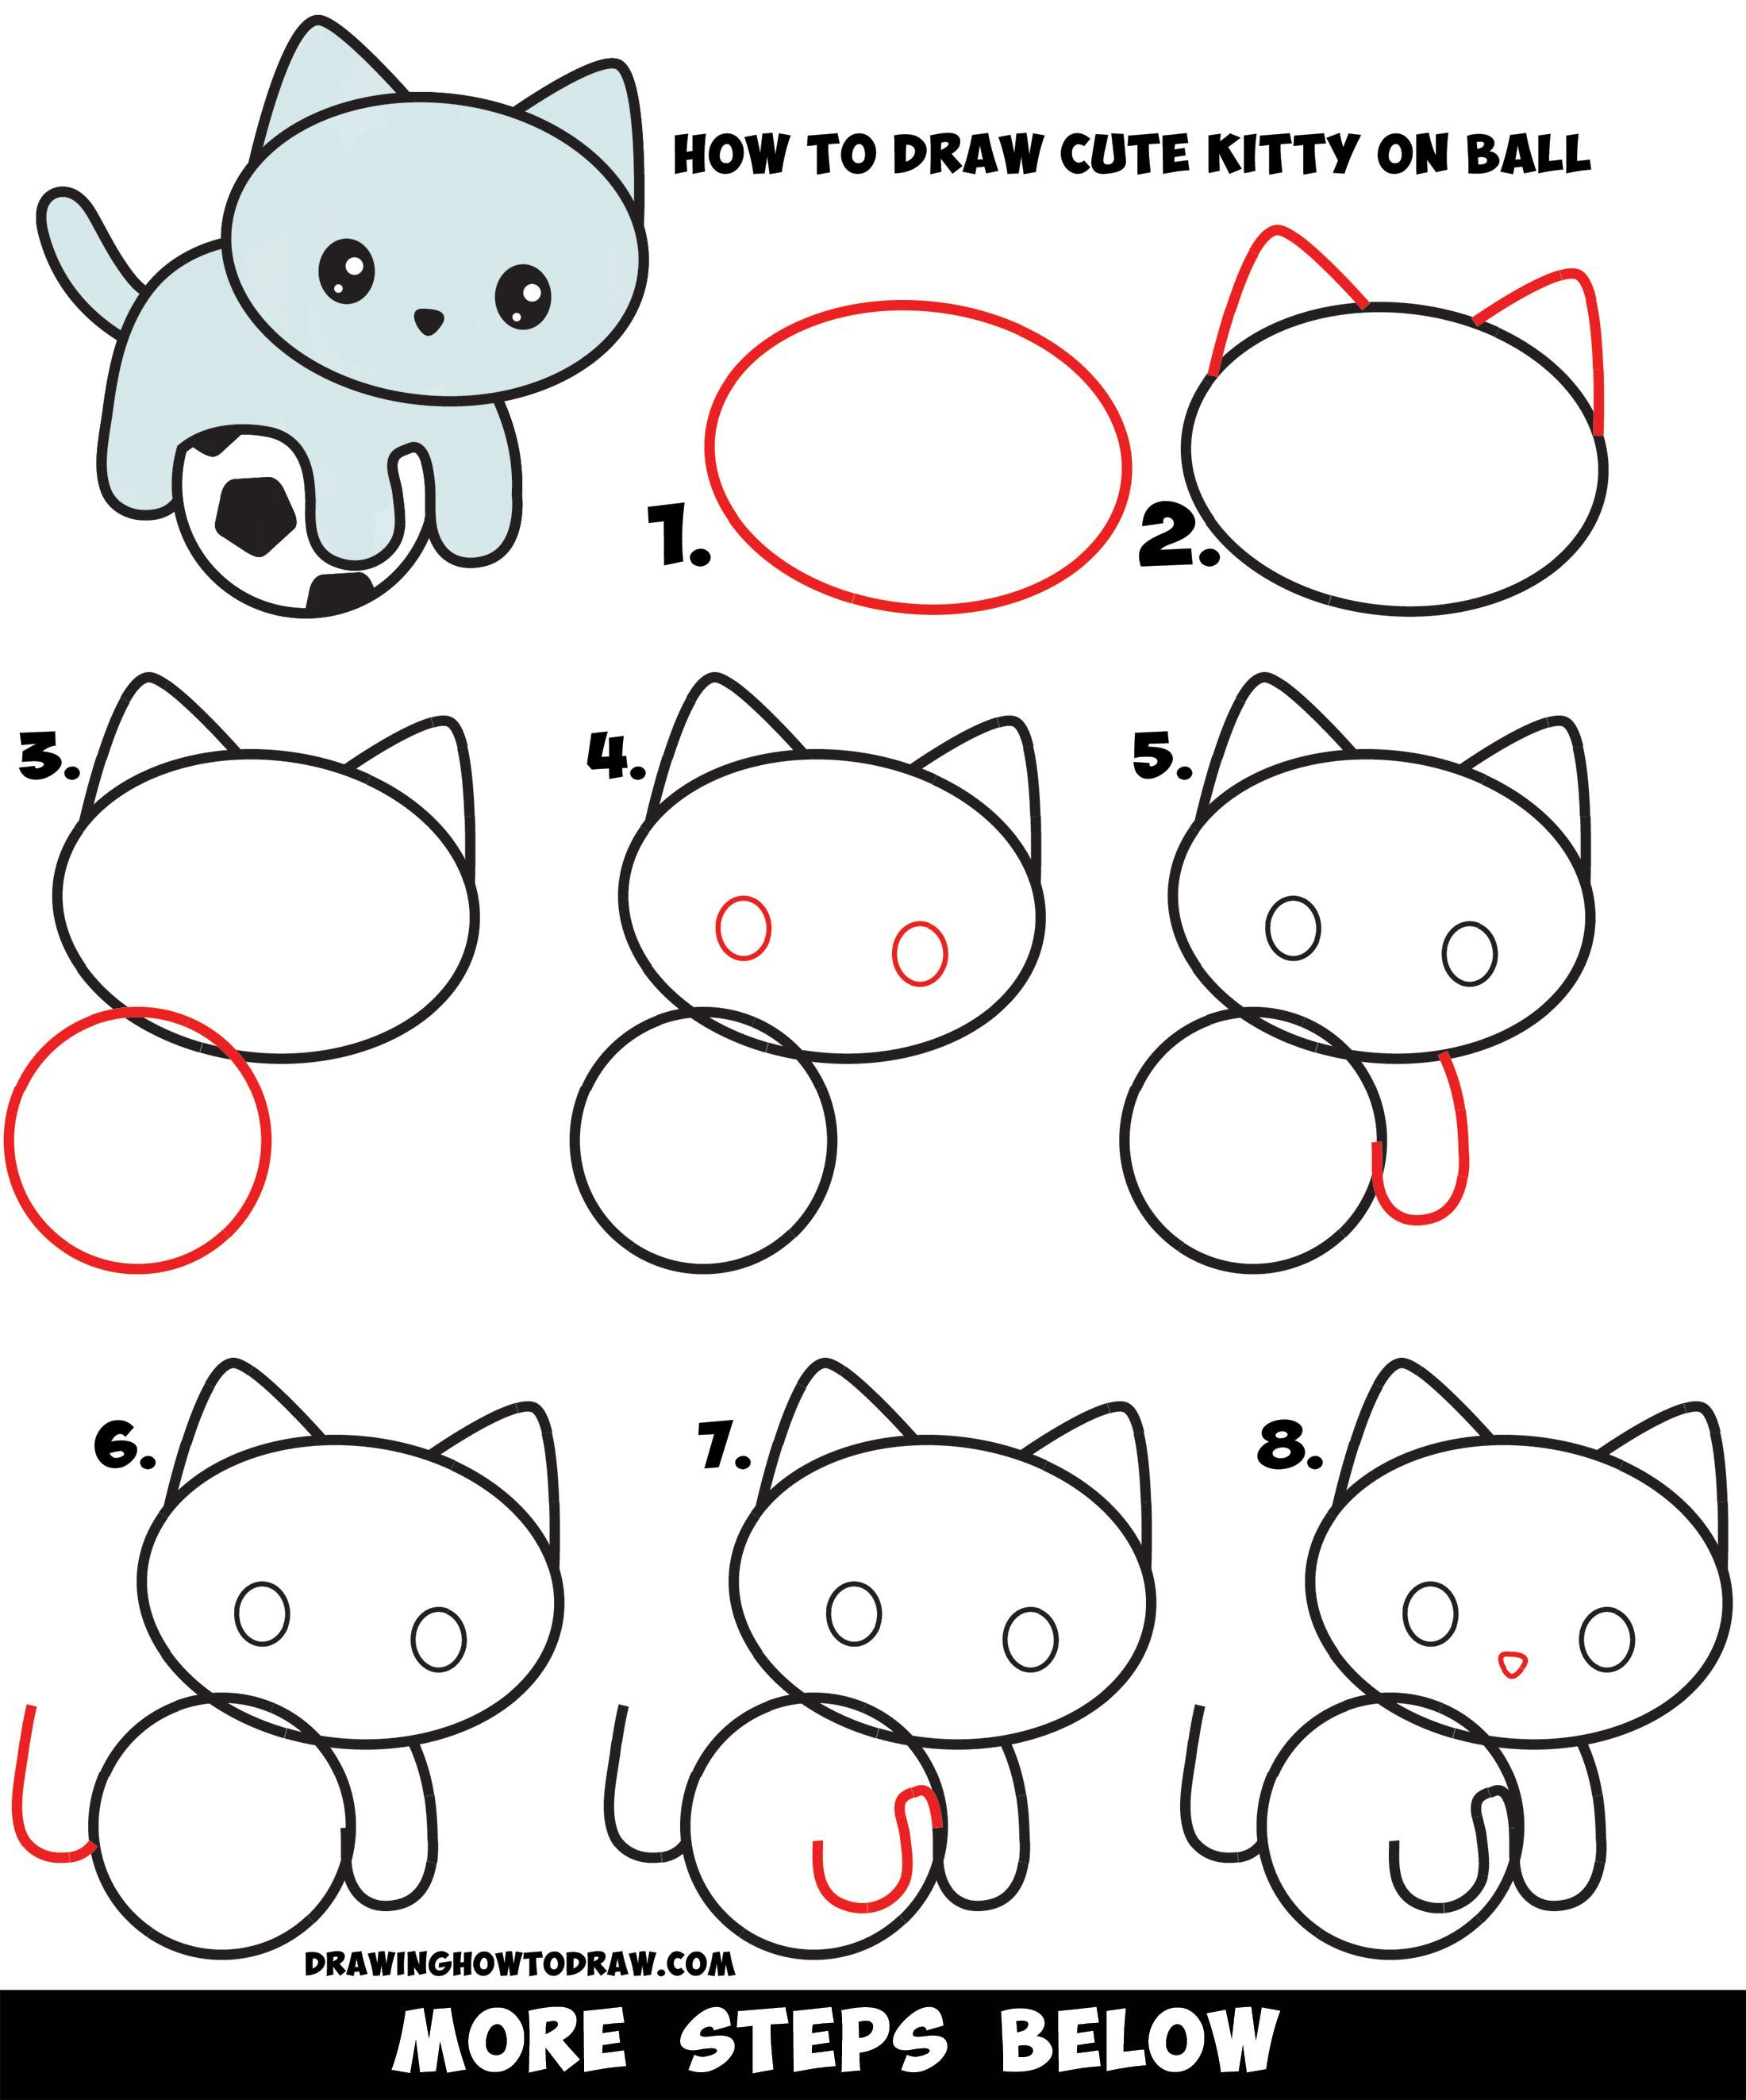 Learn How to Draw a Cute Kitten Playing on a Soccer Ball